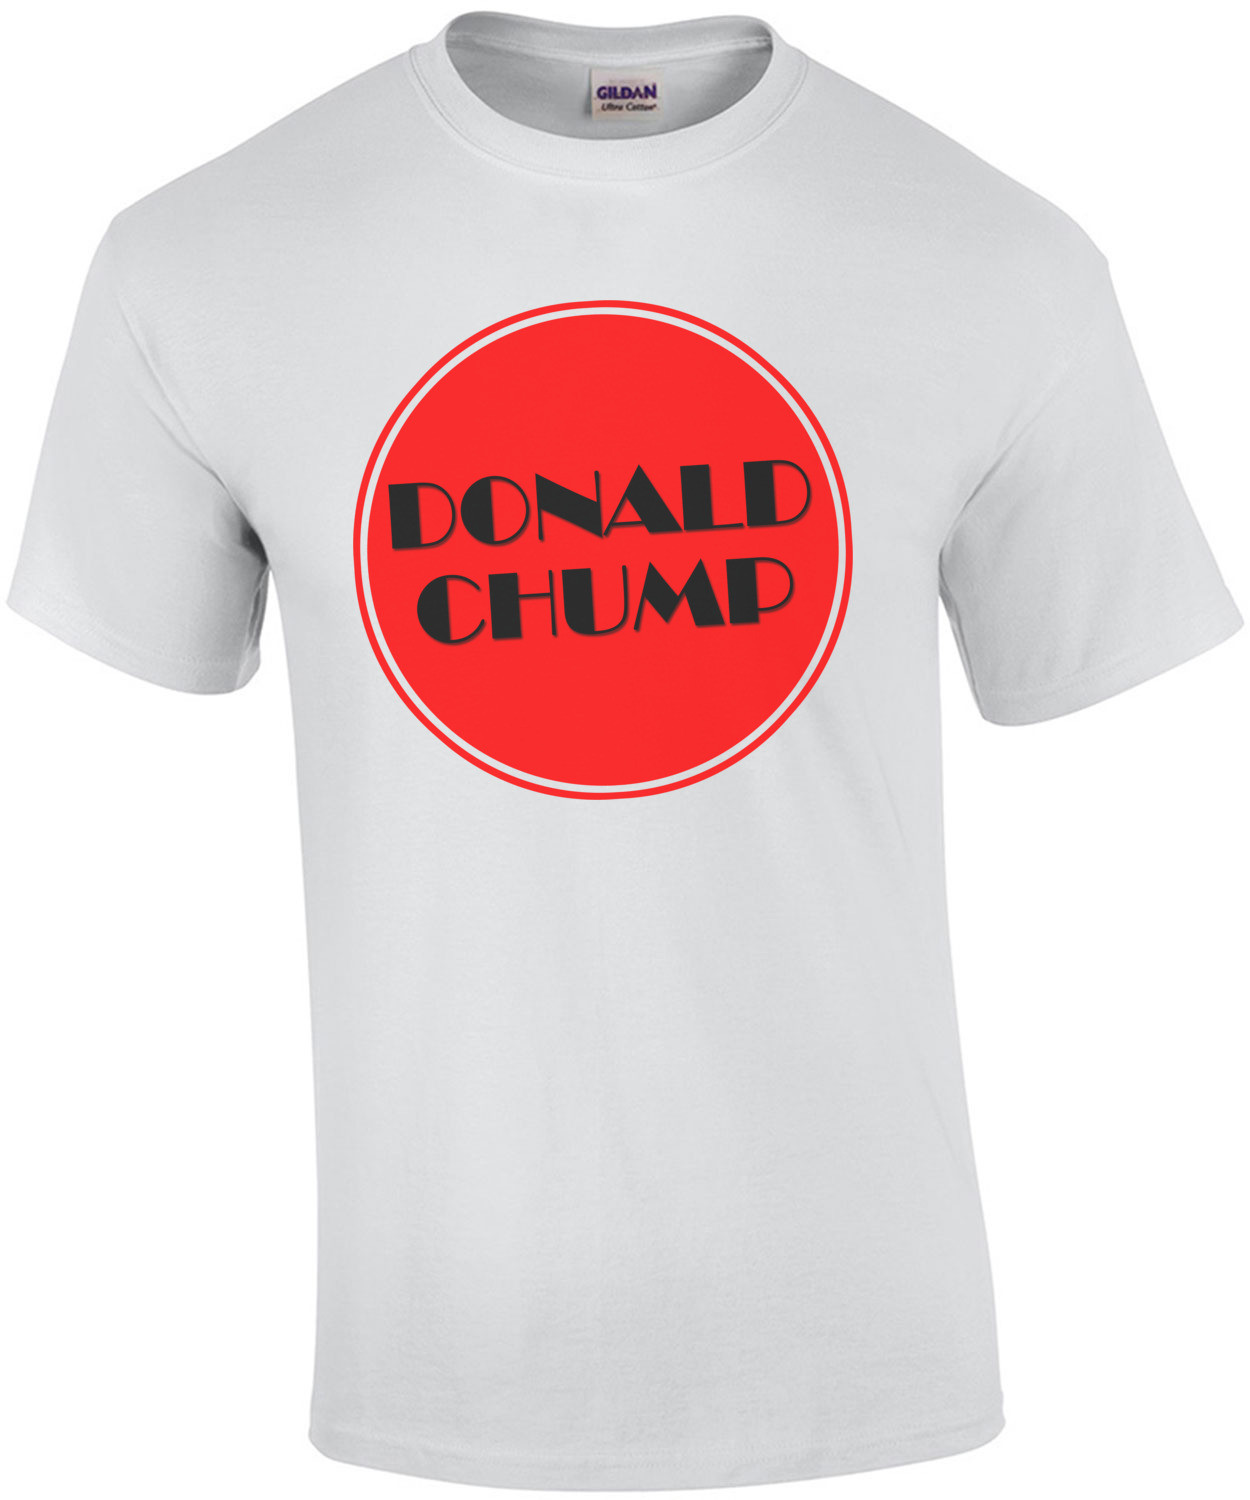 Donald Chump T-Shirt